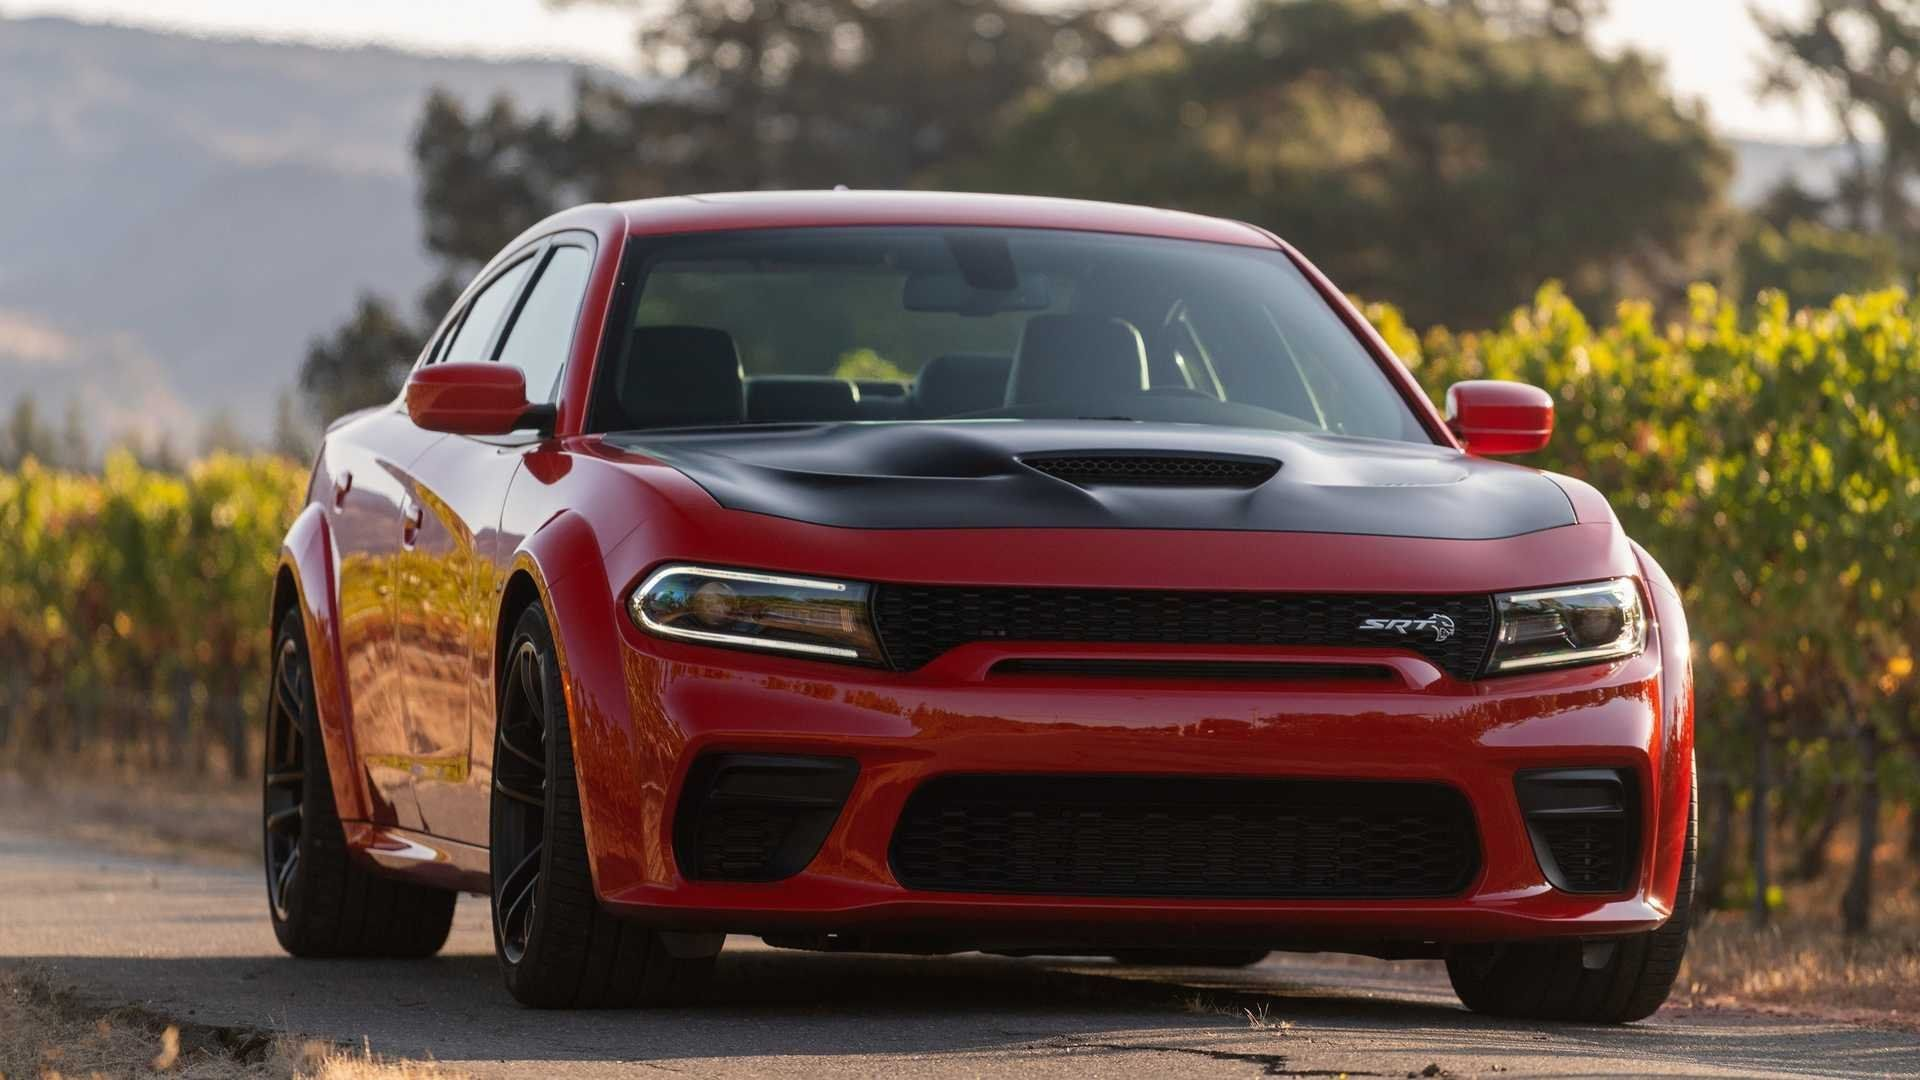 2020 Challenger Srt8 Hellcat Price Design And Review In 2020 Dodge Charger Dodge Charger Hellcat Dodge Charger Srt